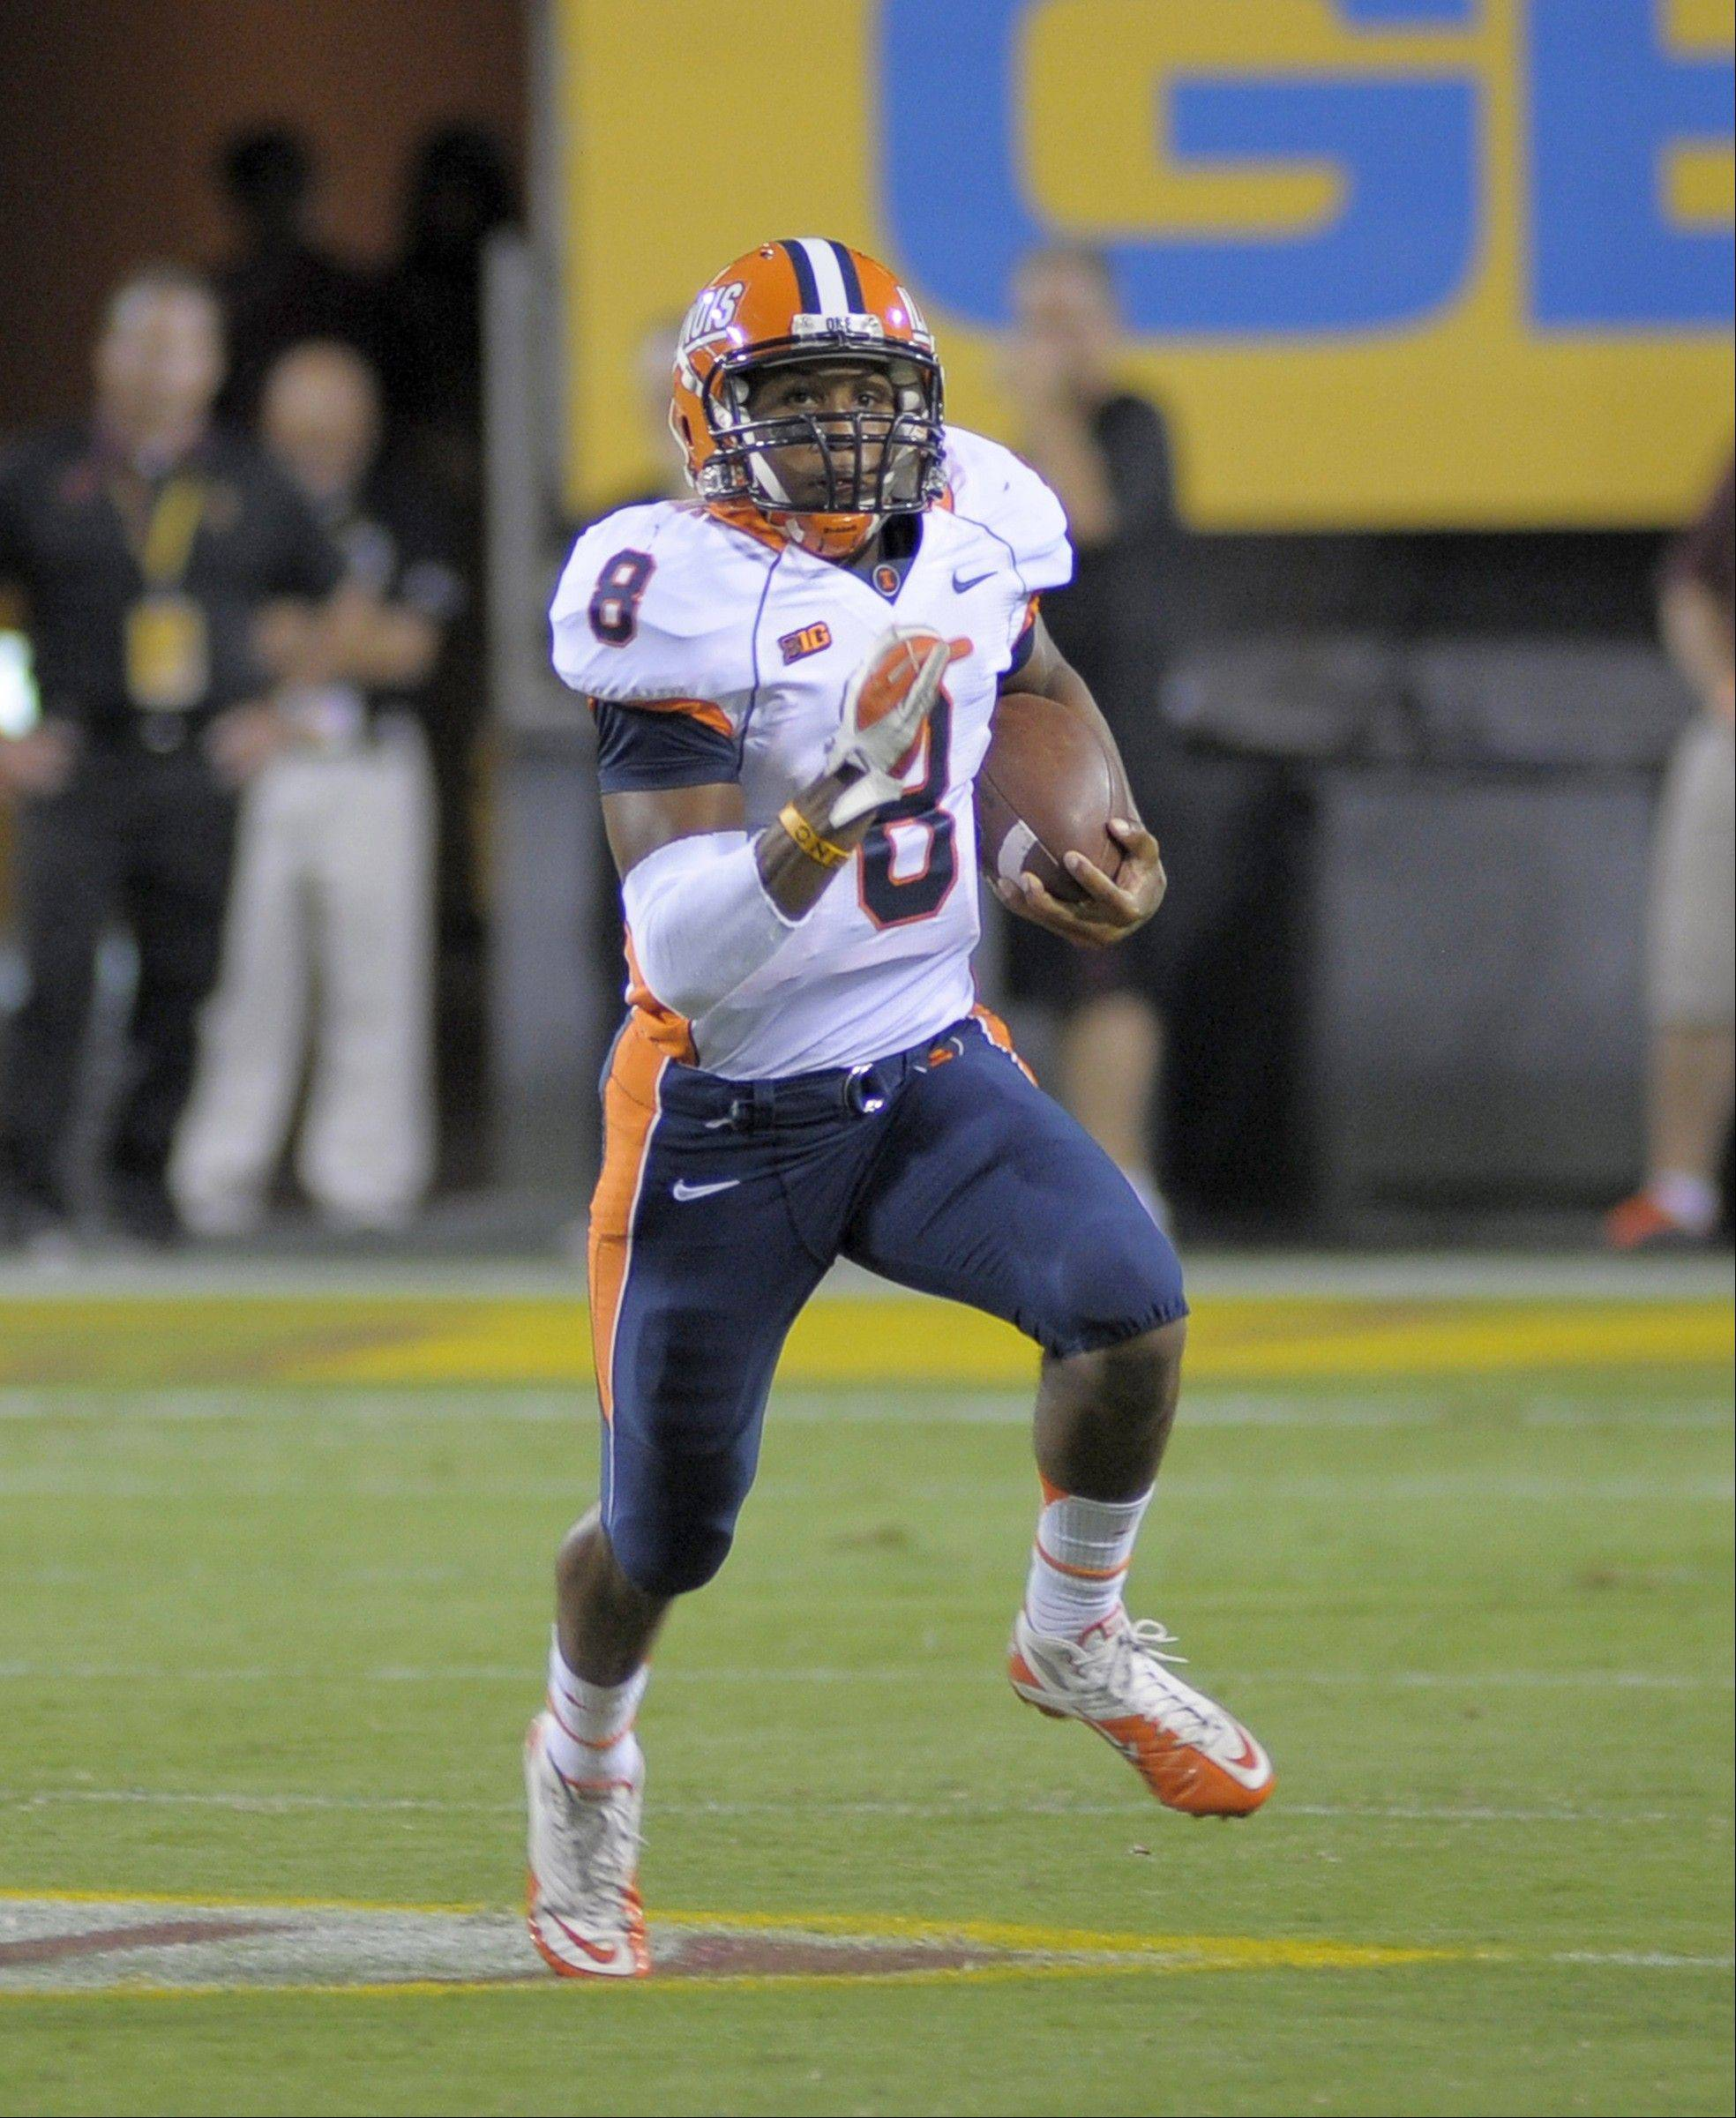 Former Prospect quarterback Miles Osei excelled at wide receiver and on special teams for Illinois in his final season of college football.